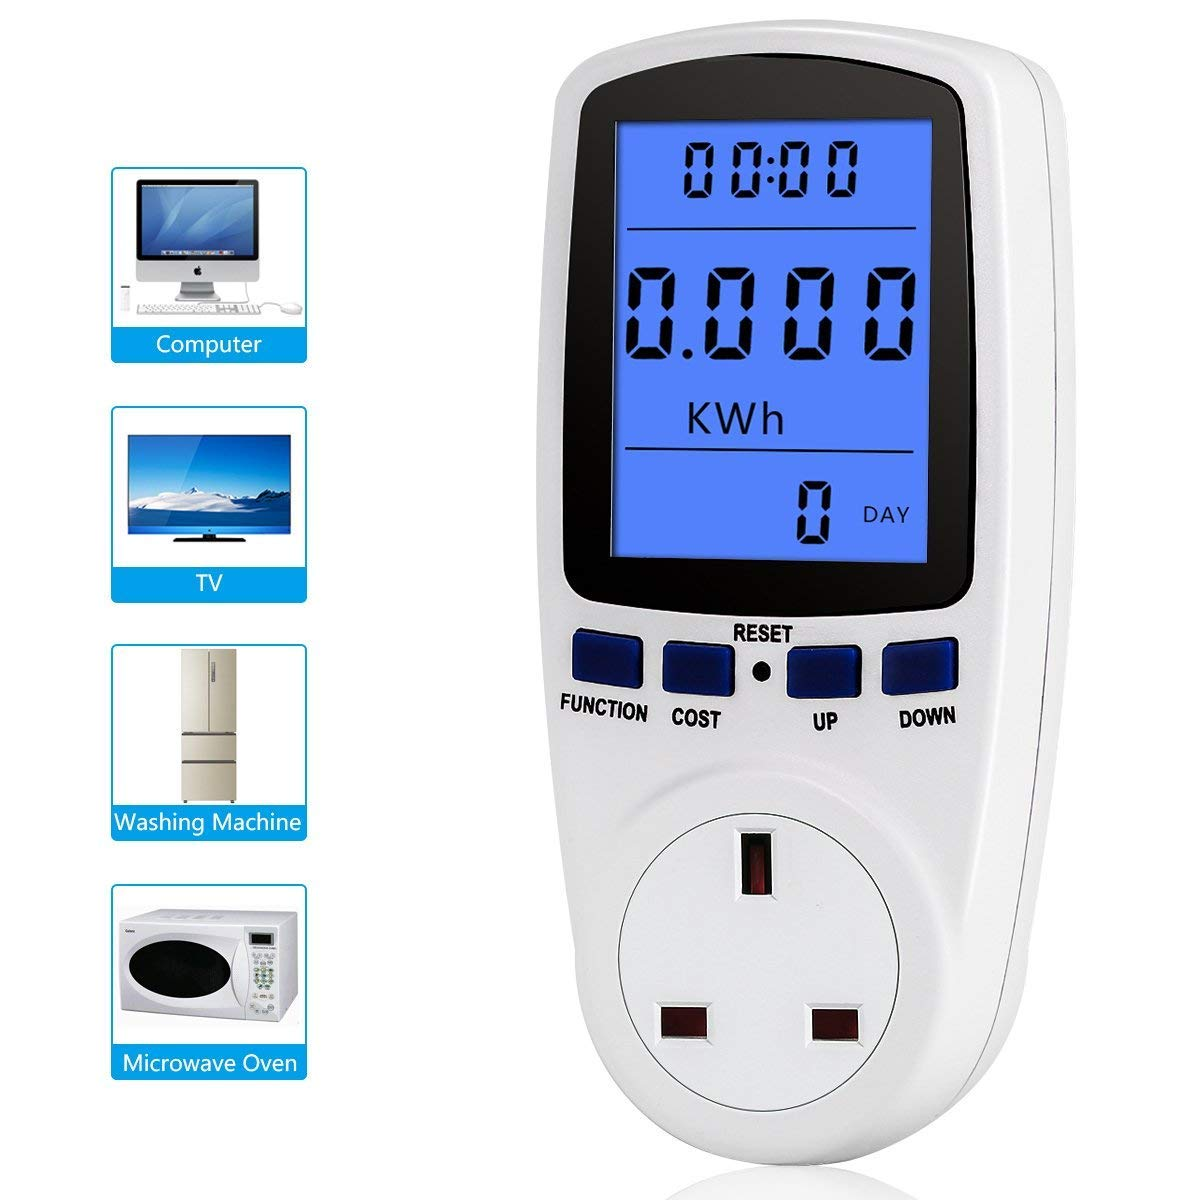 YOUTHINK UK Plug Power Meter Electricity Usage Monitor Home Energy Volt Amps Watt Analyzer with Digital LCD Display Overload Protection